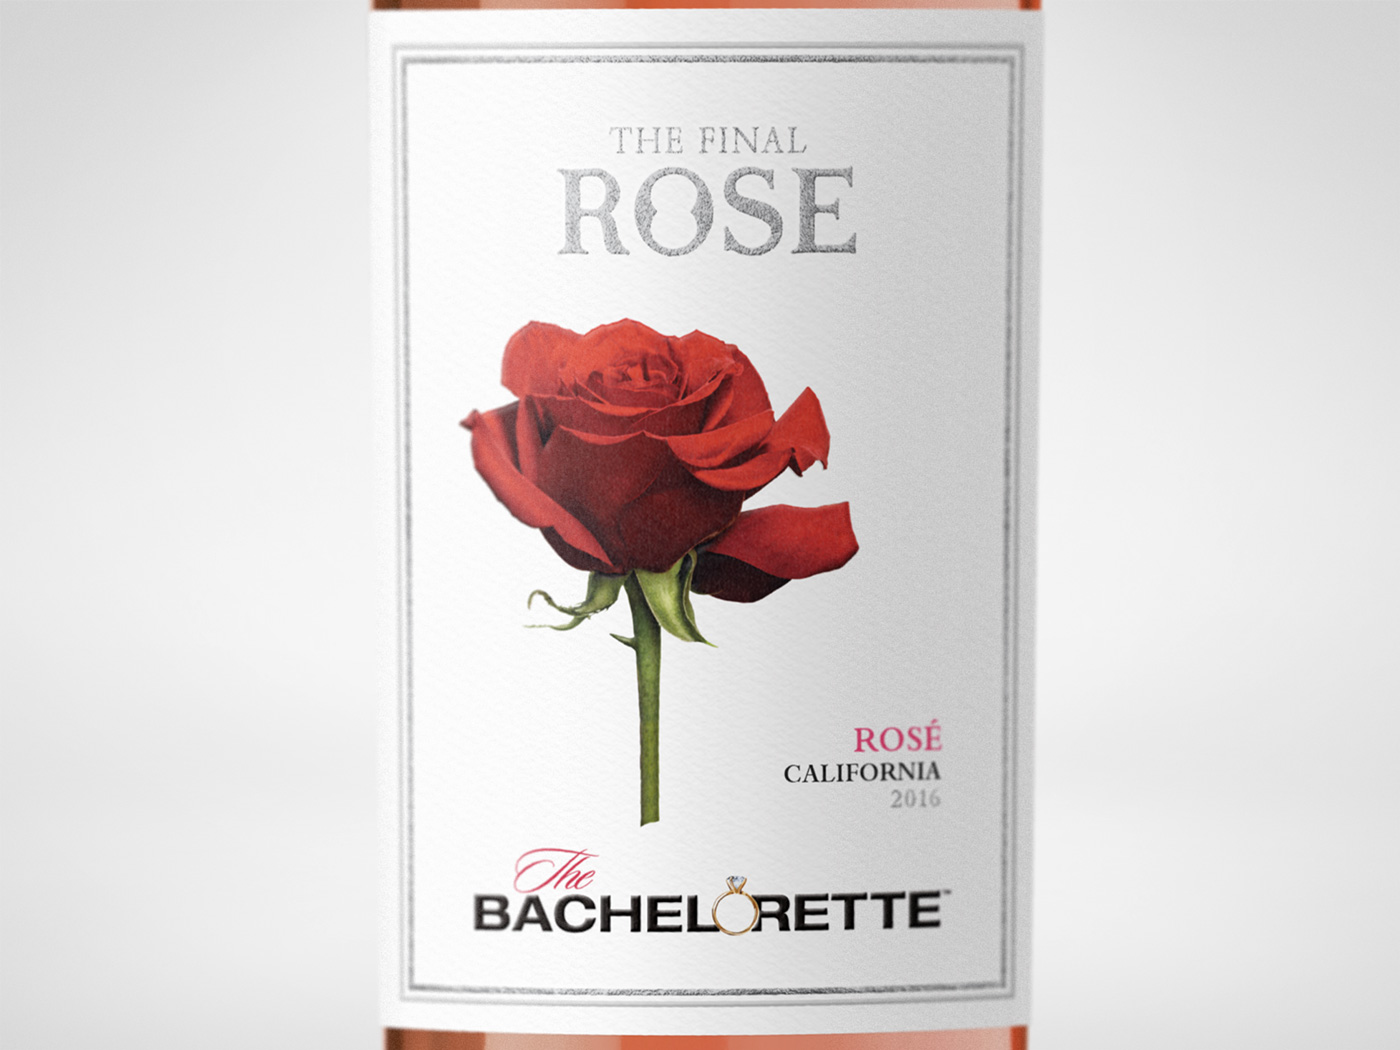 Bachelor Wines - The Final Rose Label